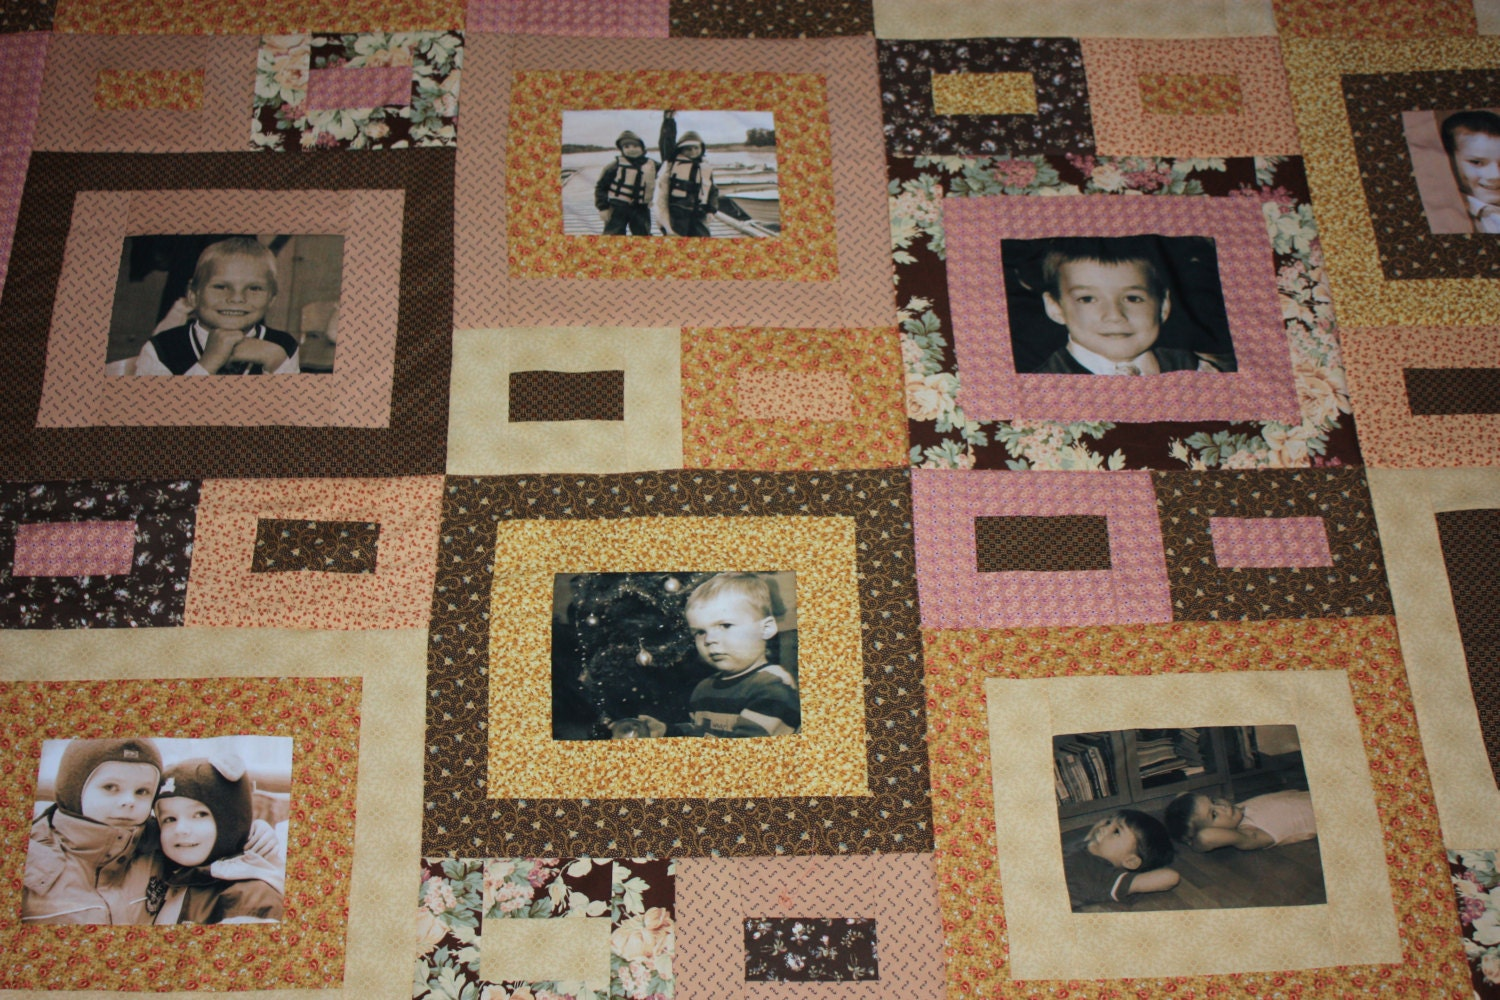 personalized photo quilt photo frames in brown peach using family photos customized photo quilt heirloom memory quilt with photos